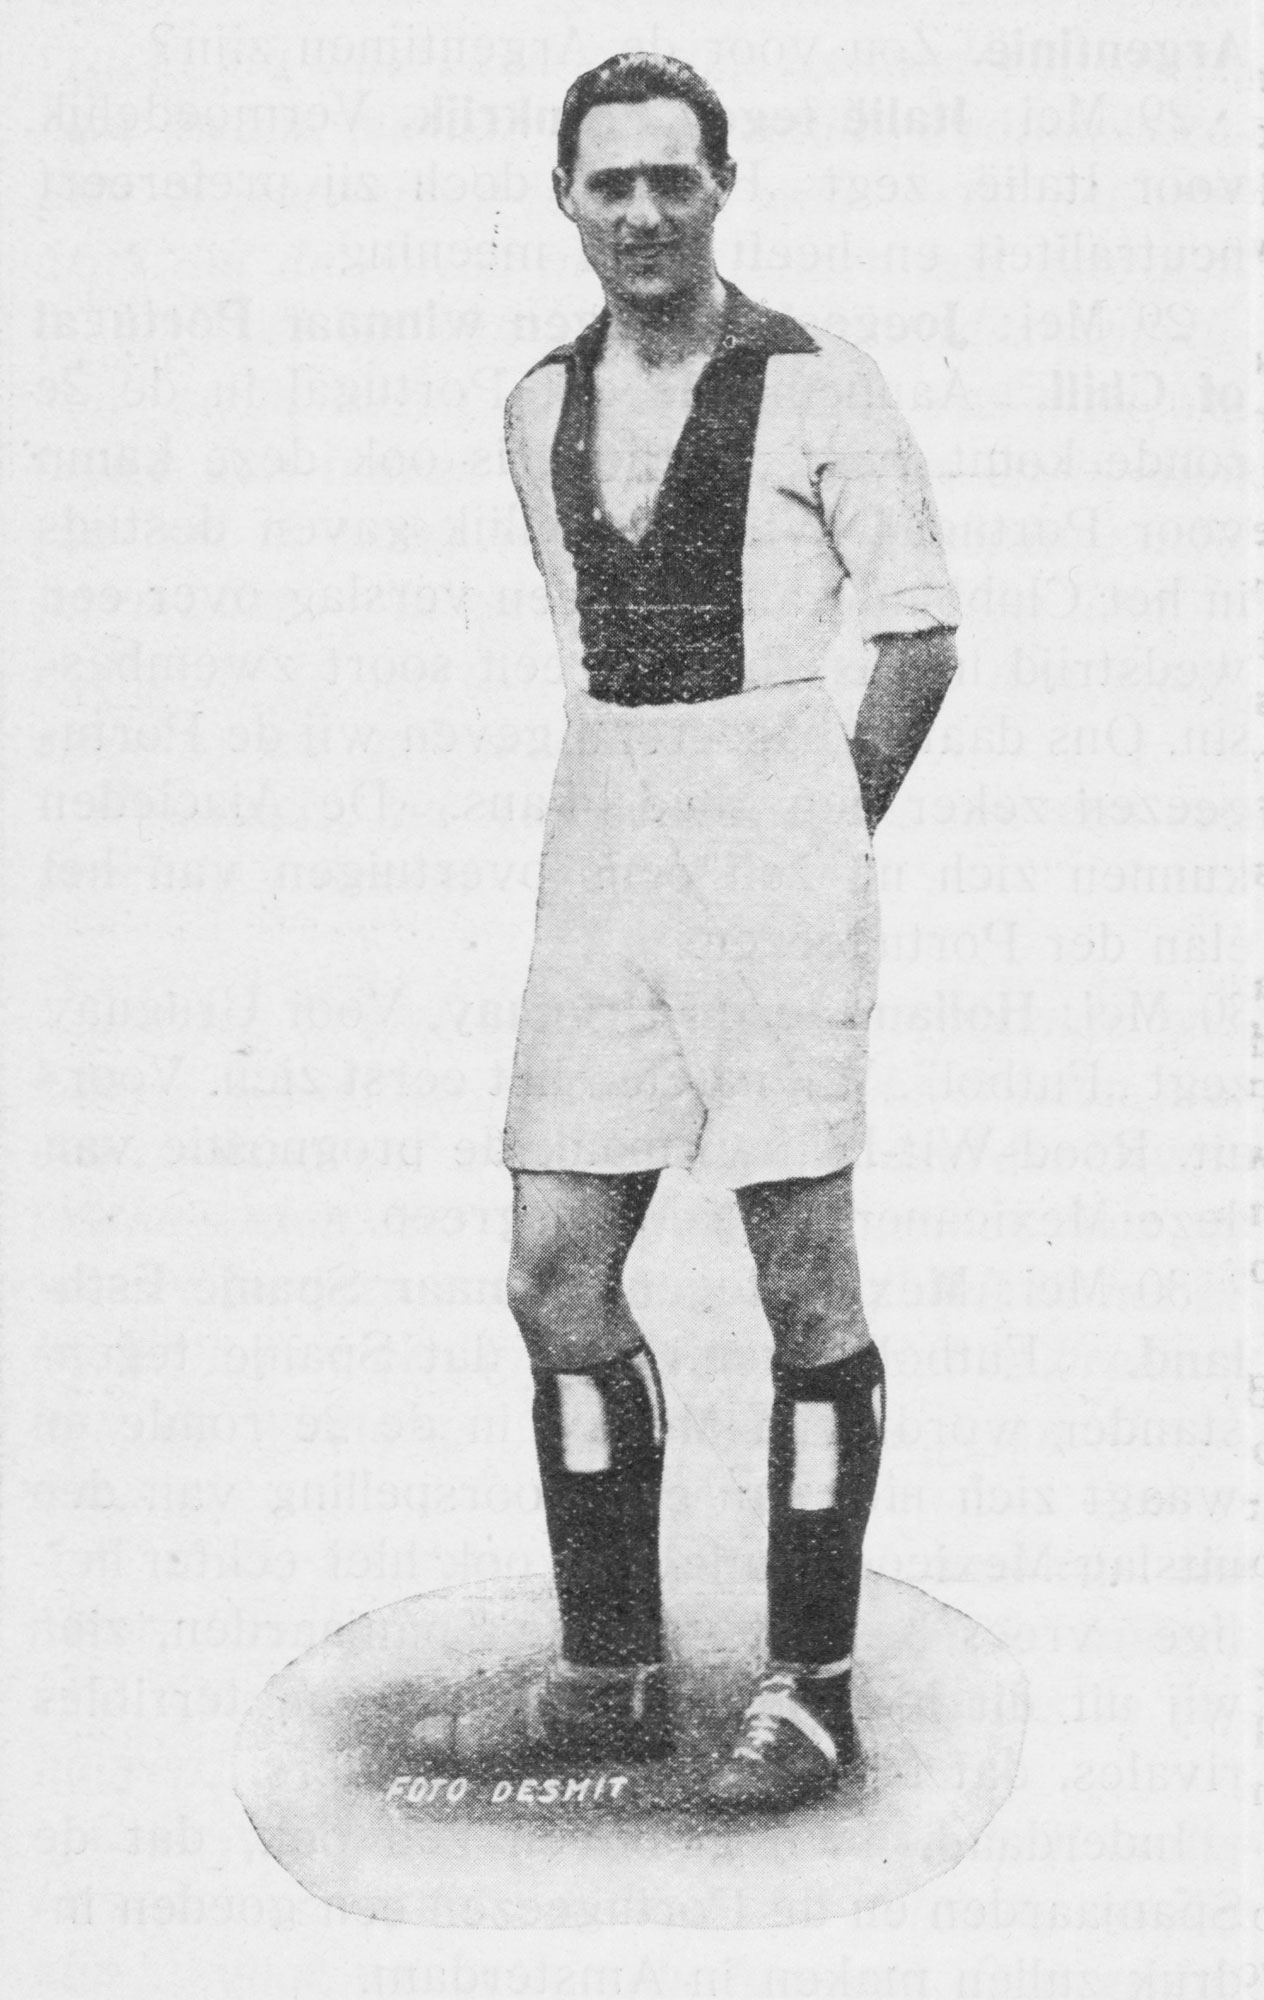 Eddy Hamel was an American-born player for Ajax who was killed in the Holocaust.